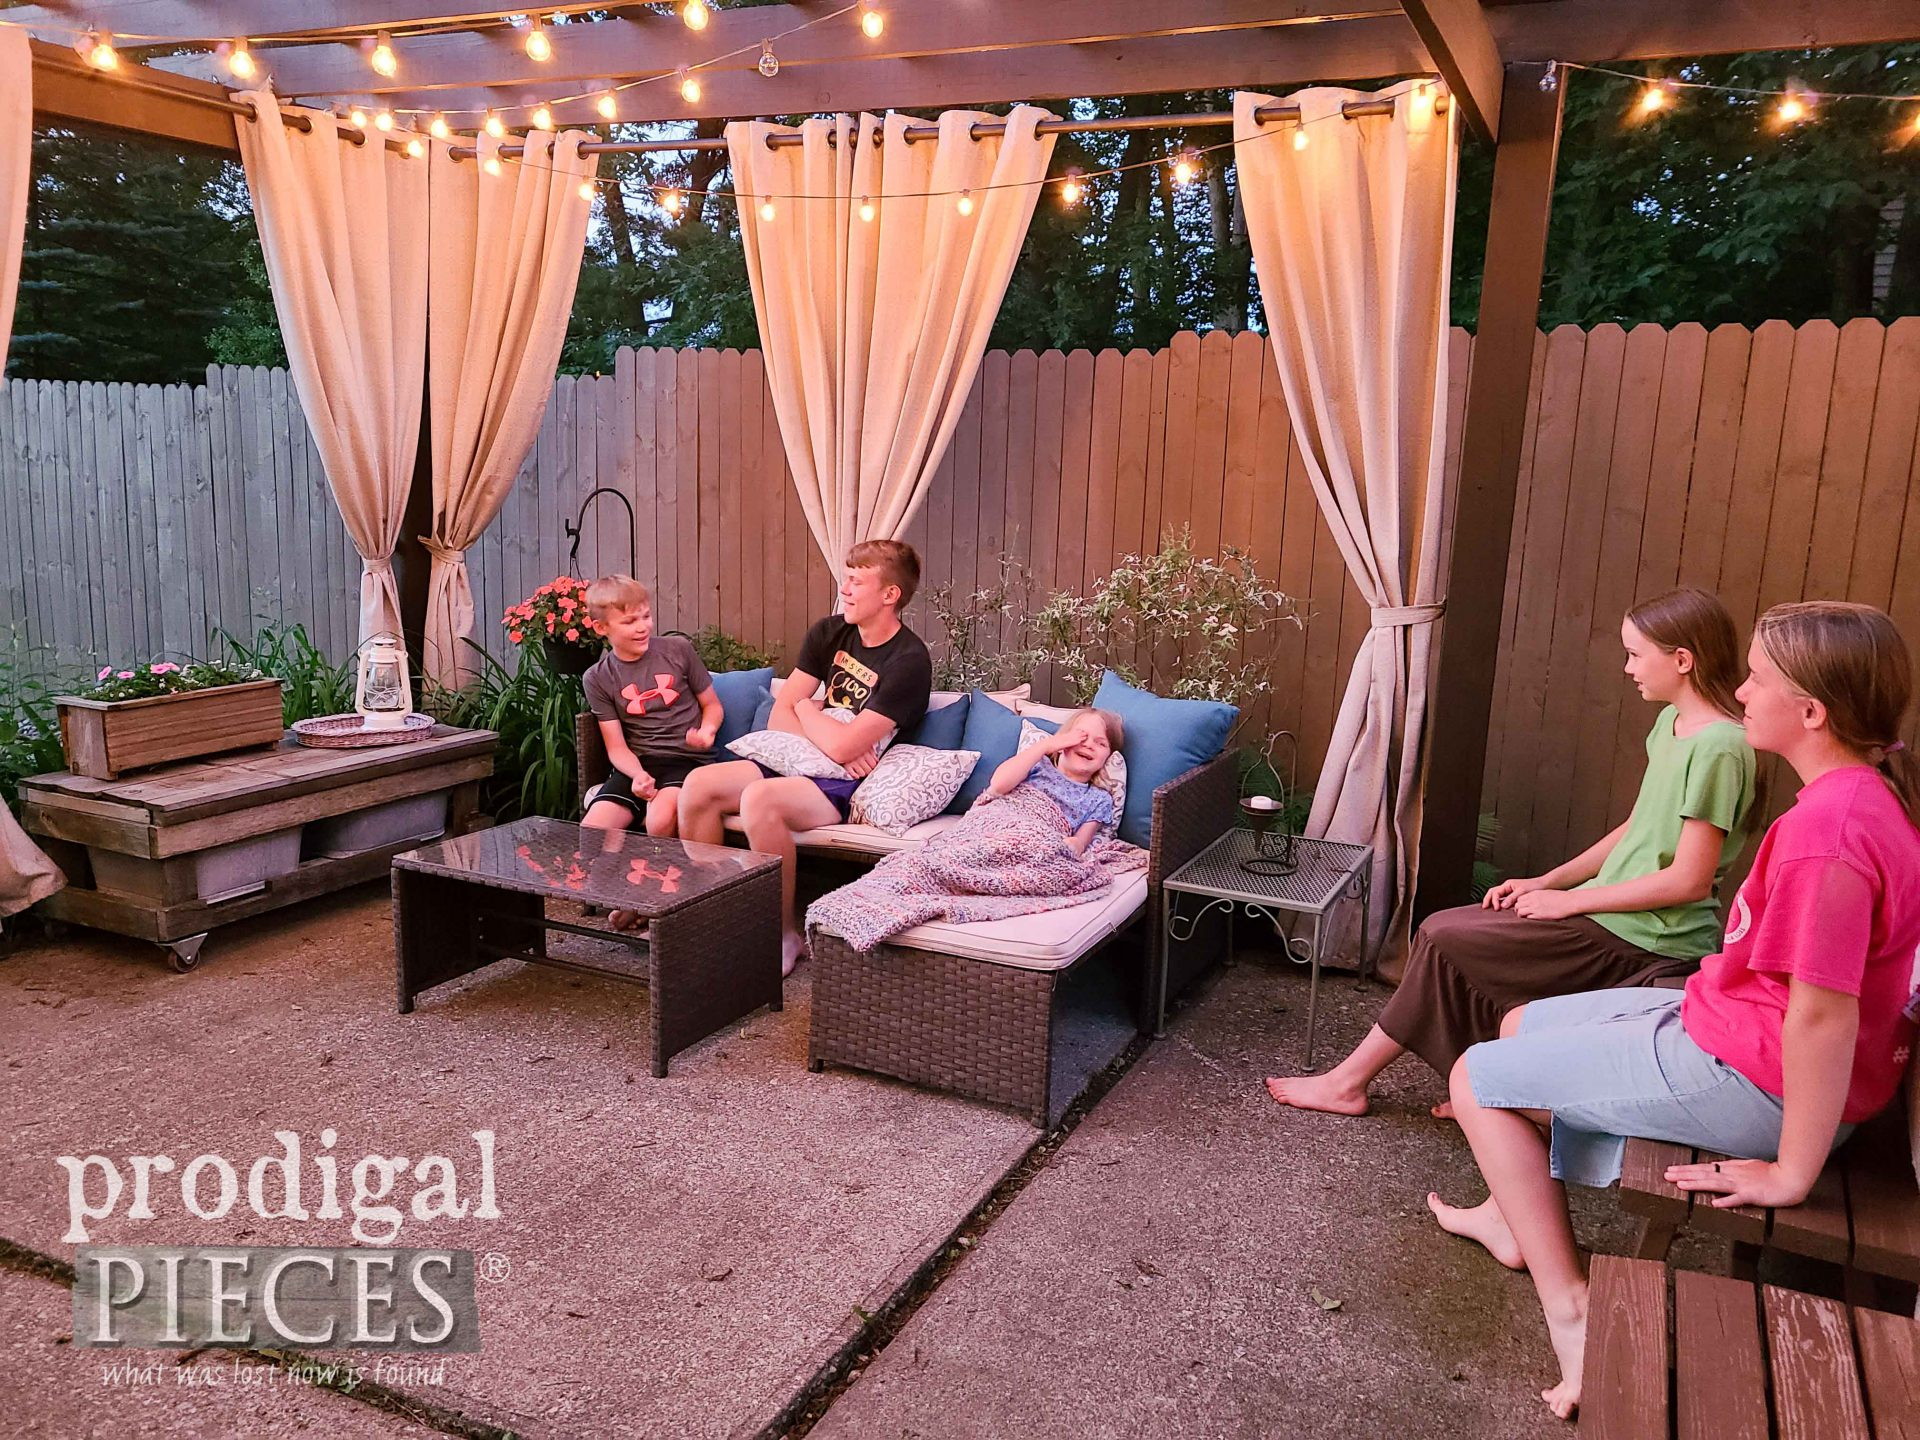 Kids on Backyard Patio by Prodigal Pieces | prodigalpieces.com #prodigalpieces #patio #diy #home #homedecor #family